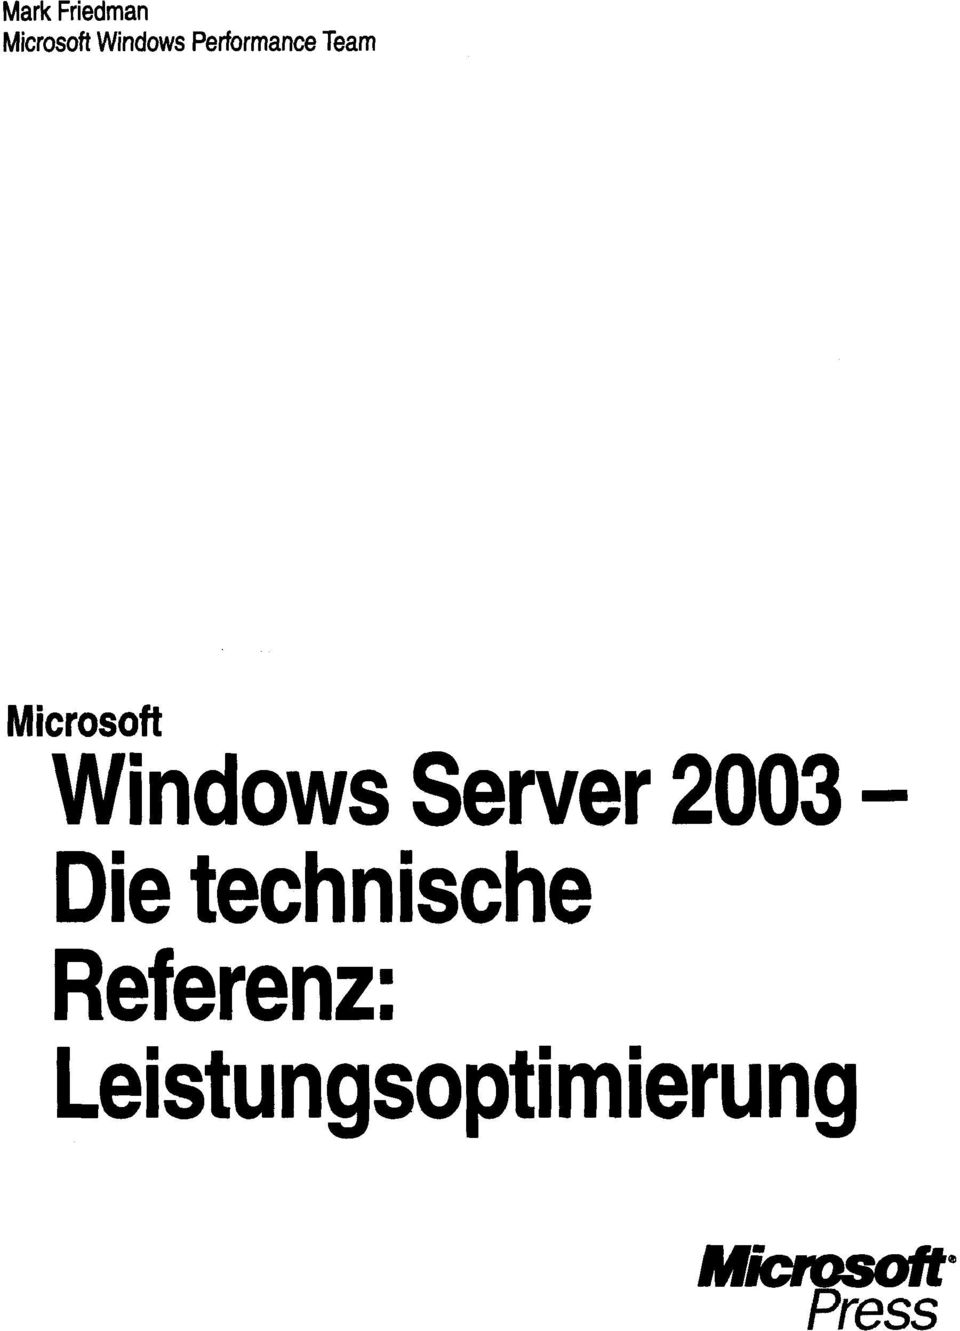 Windows Server 2003 - Die